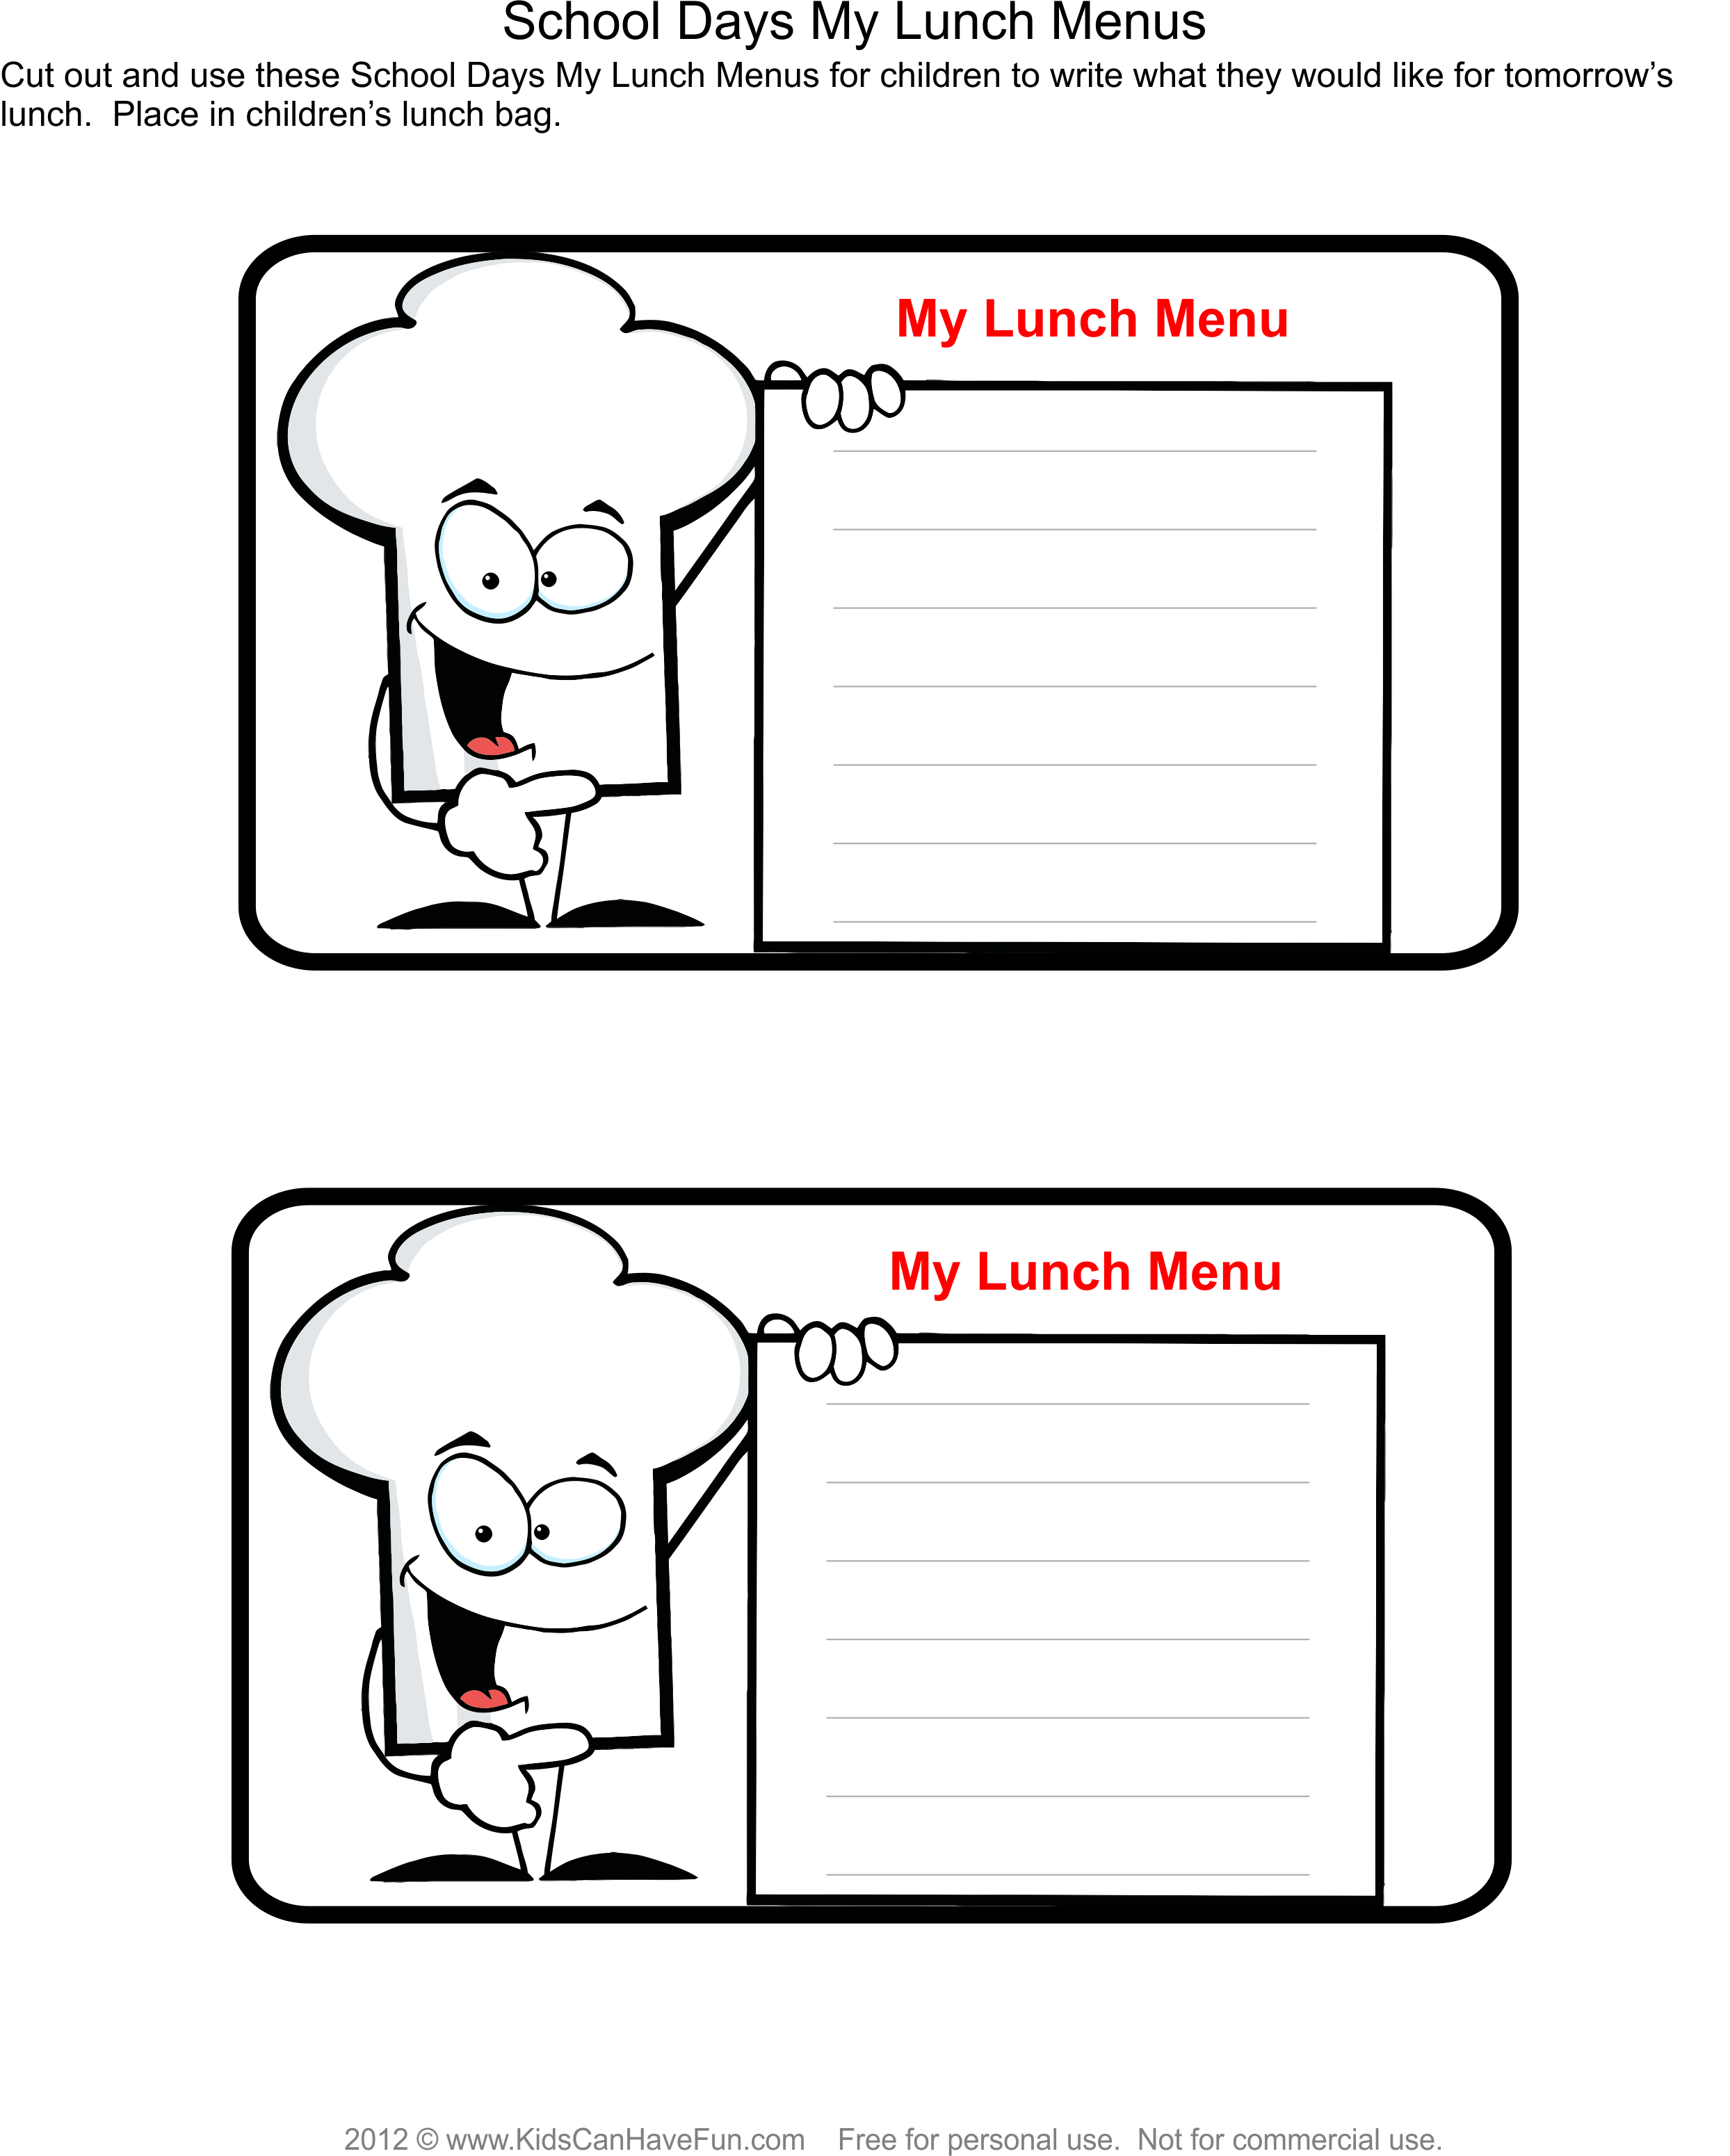 Place My Lunch Menu In Lunch Bag Kids Write Down What